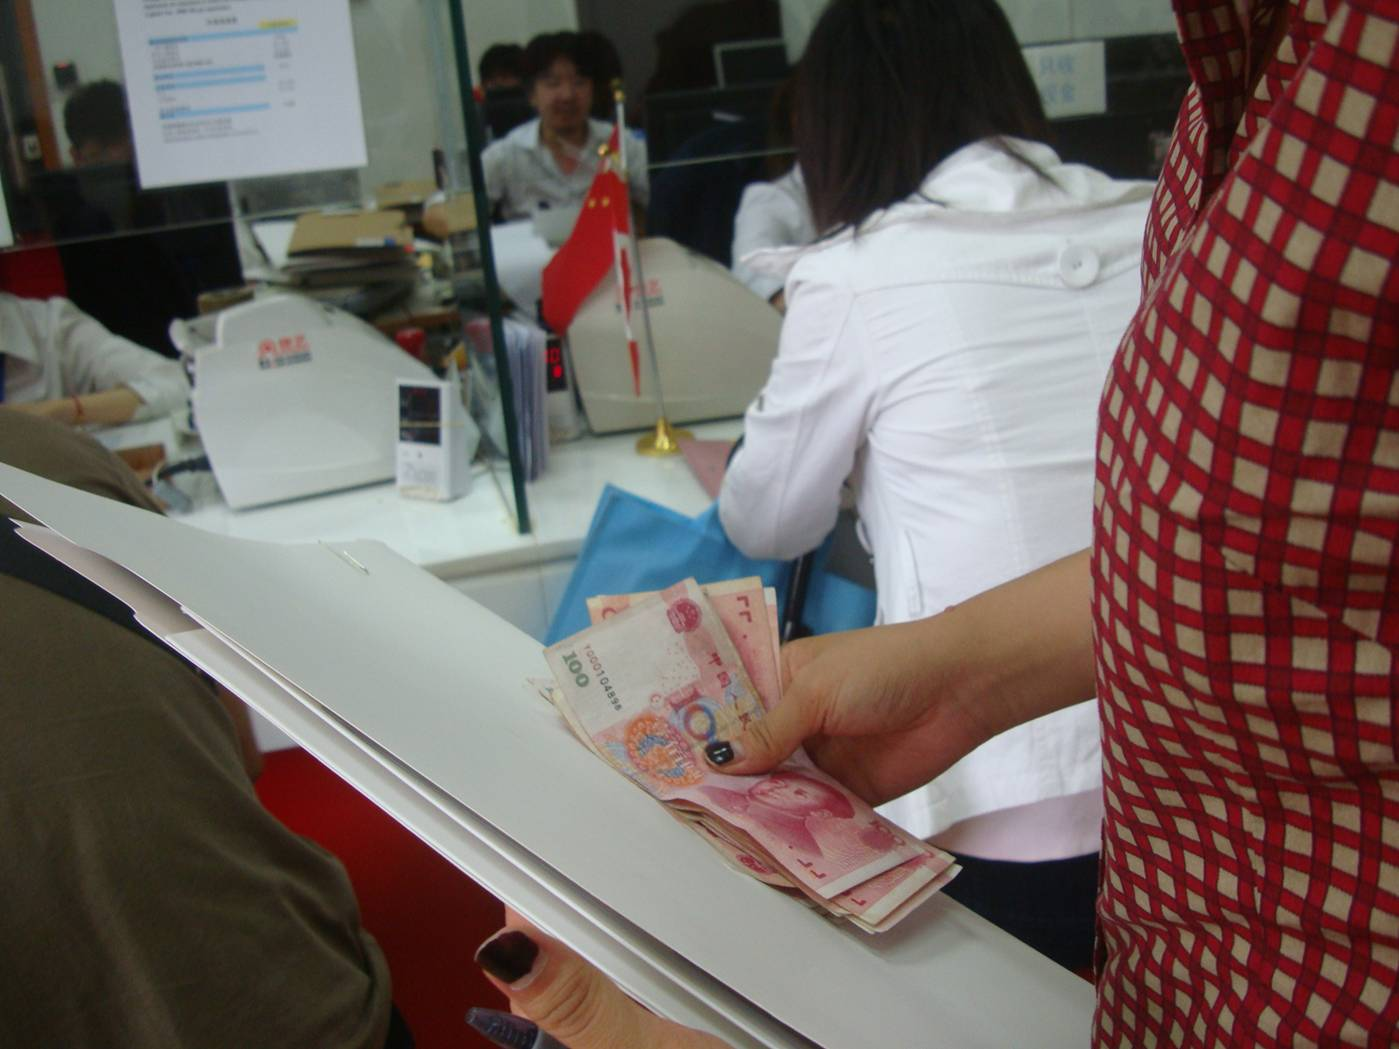 Picture:  Another 800 RMB goes into the cashier window as Panda applies again for a Canadian visa in Shanghai.